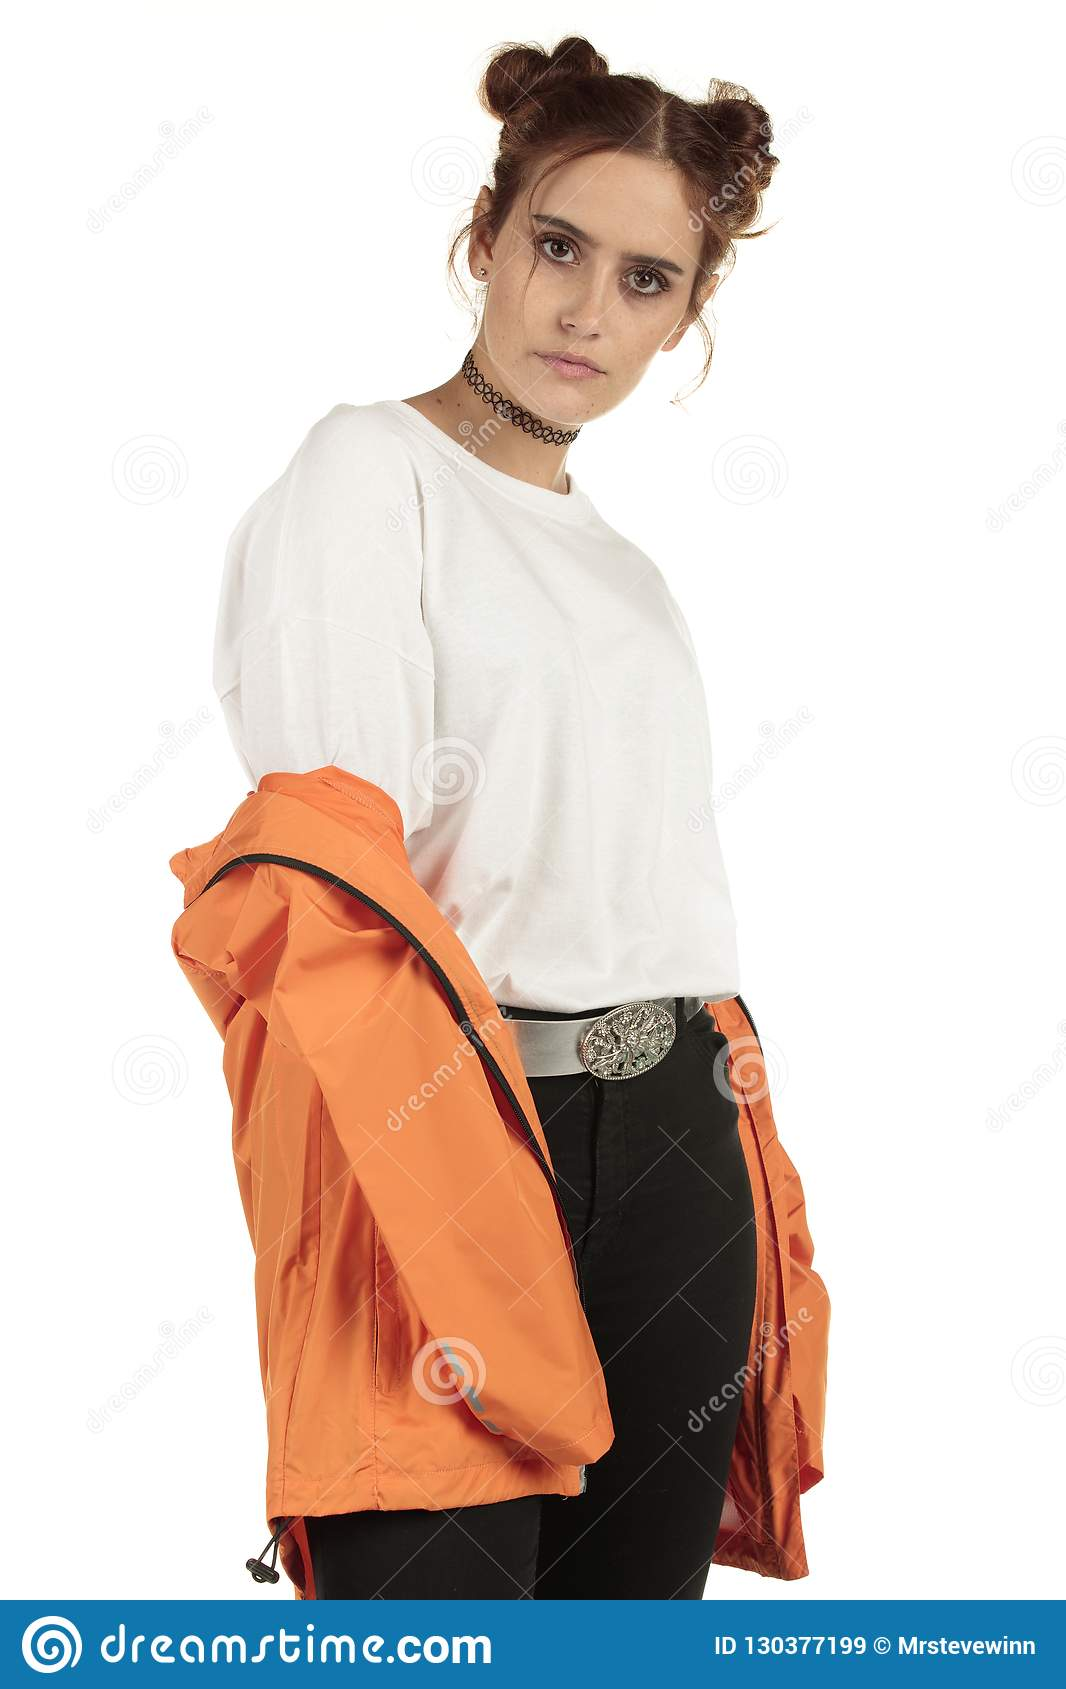 e46d8d02721a0b Fashion model in a XXL street wear tshirt and off the shoulder tracksuit  large space for